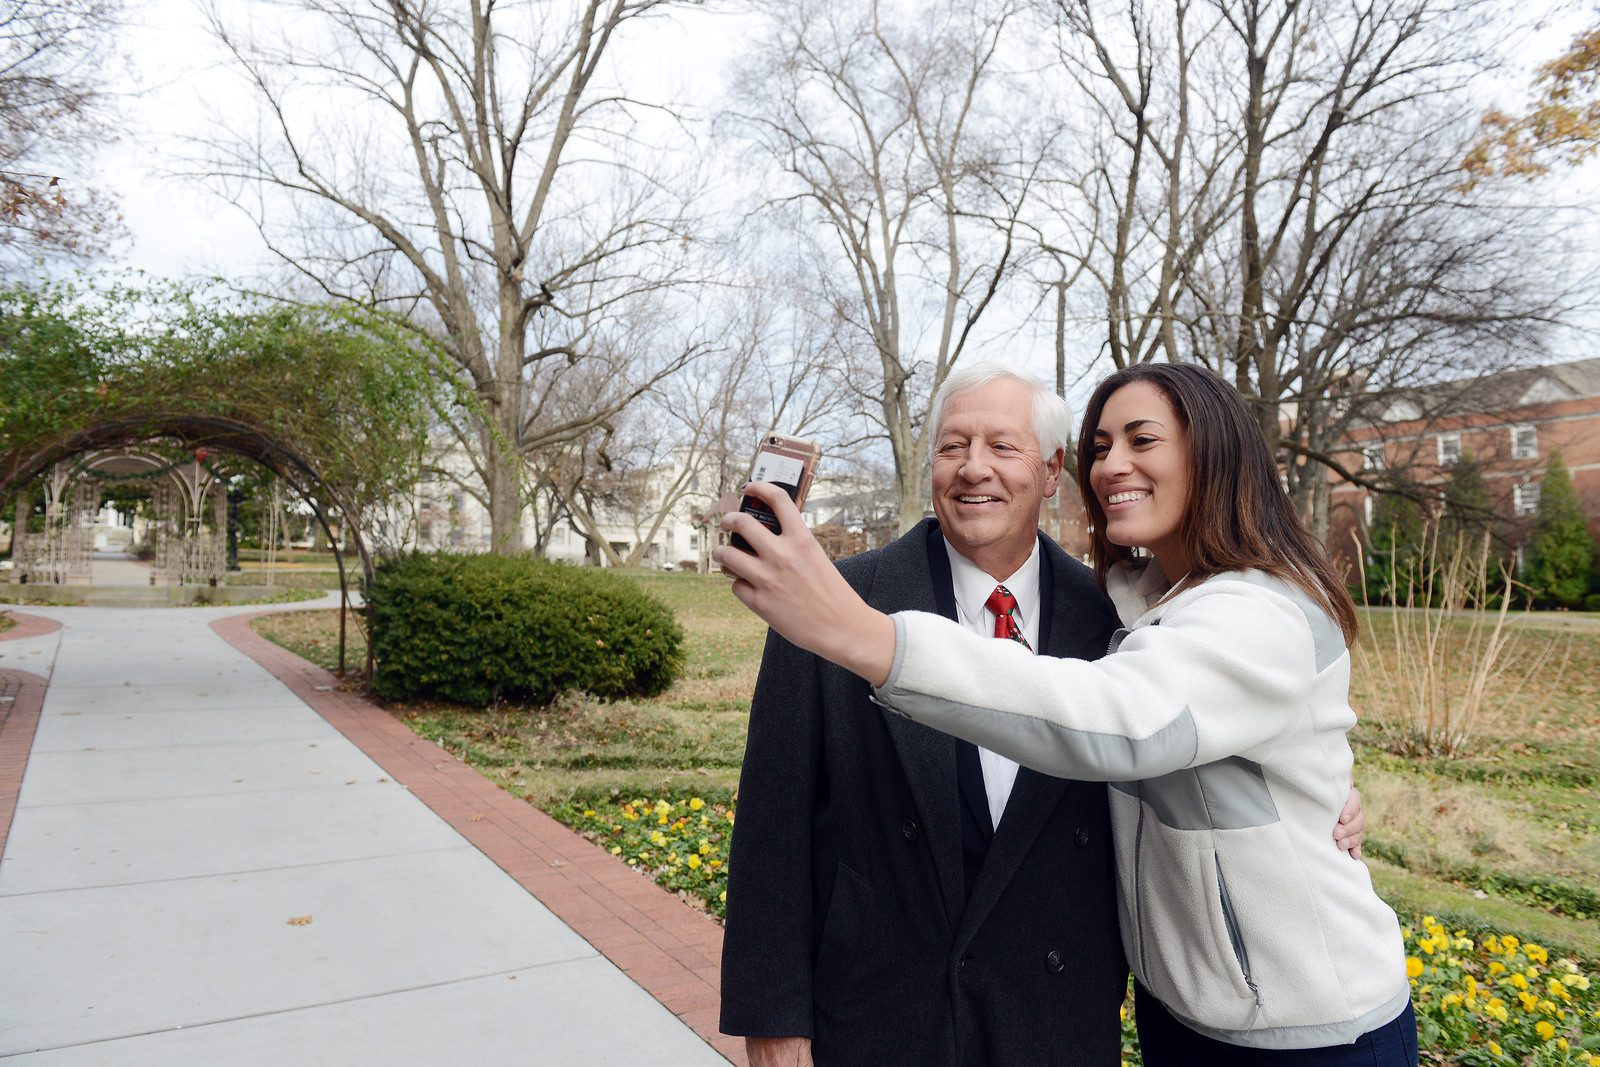 Student takes a selfie with Dr. Fisher